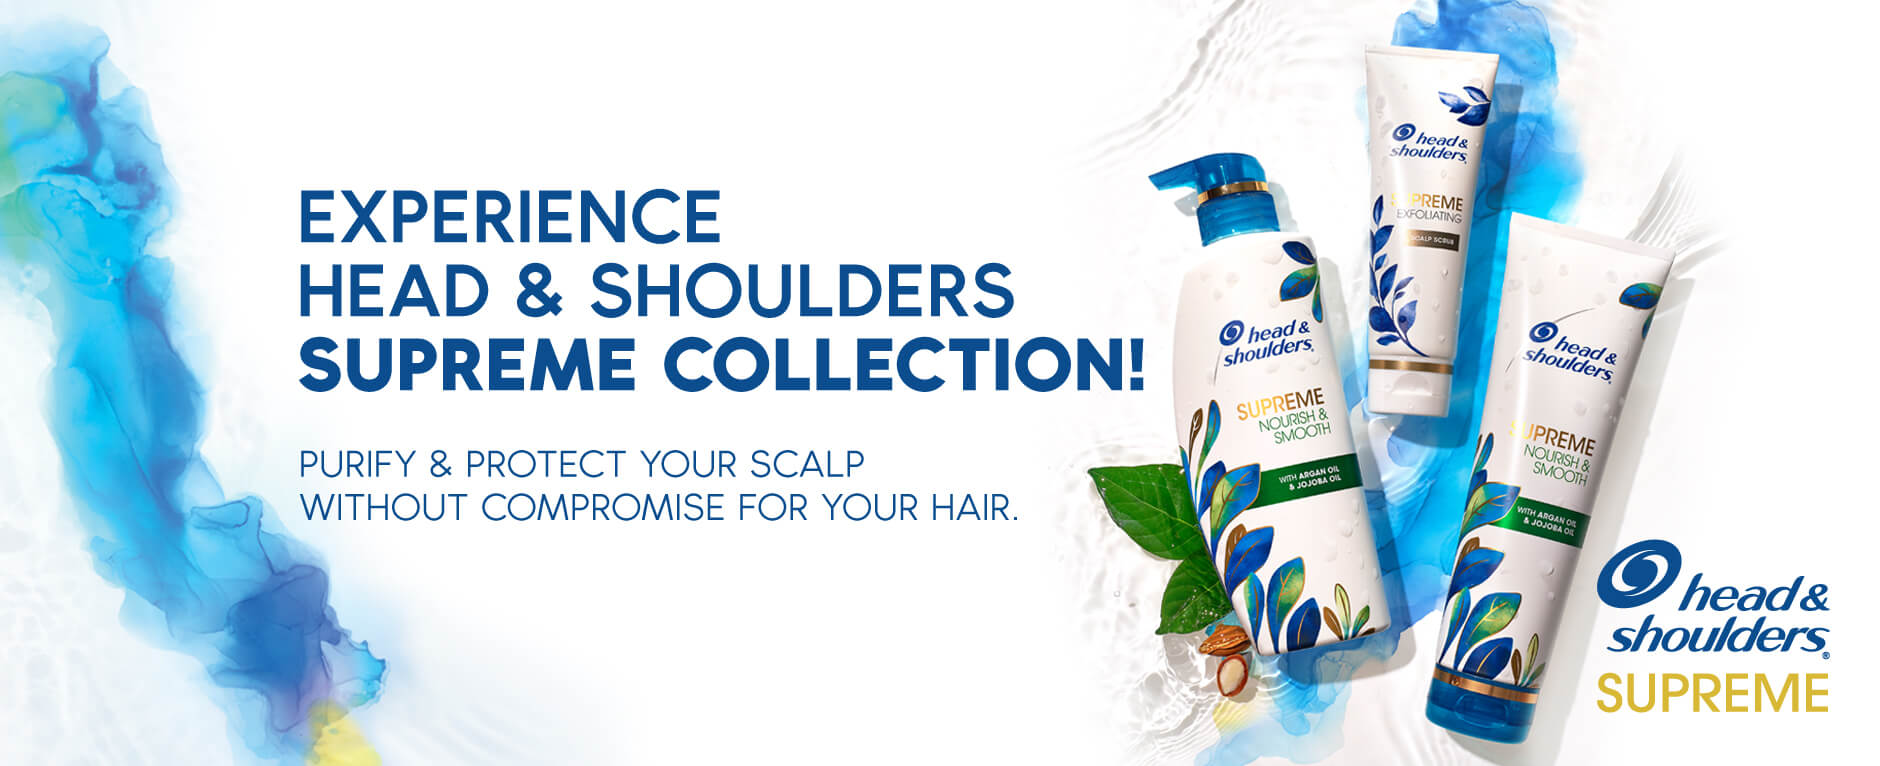 Head&Shoulders US Supreme product range